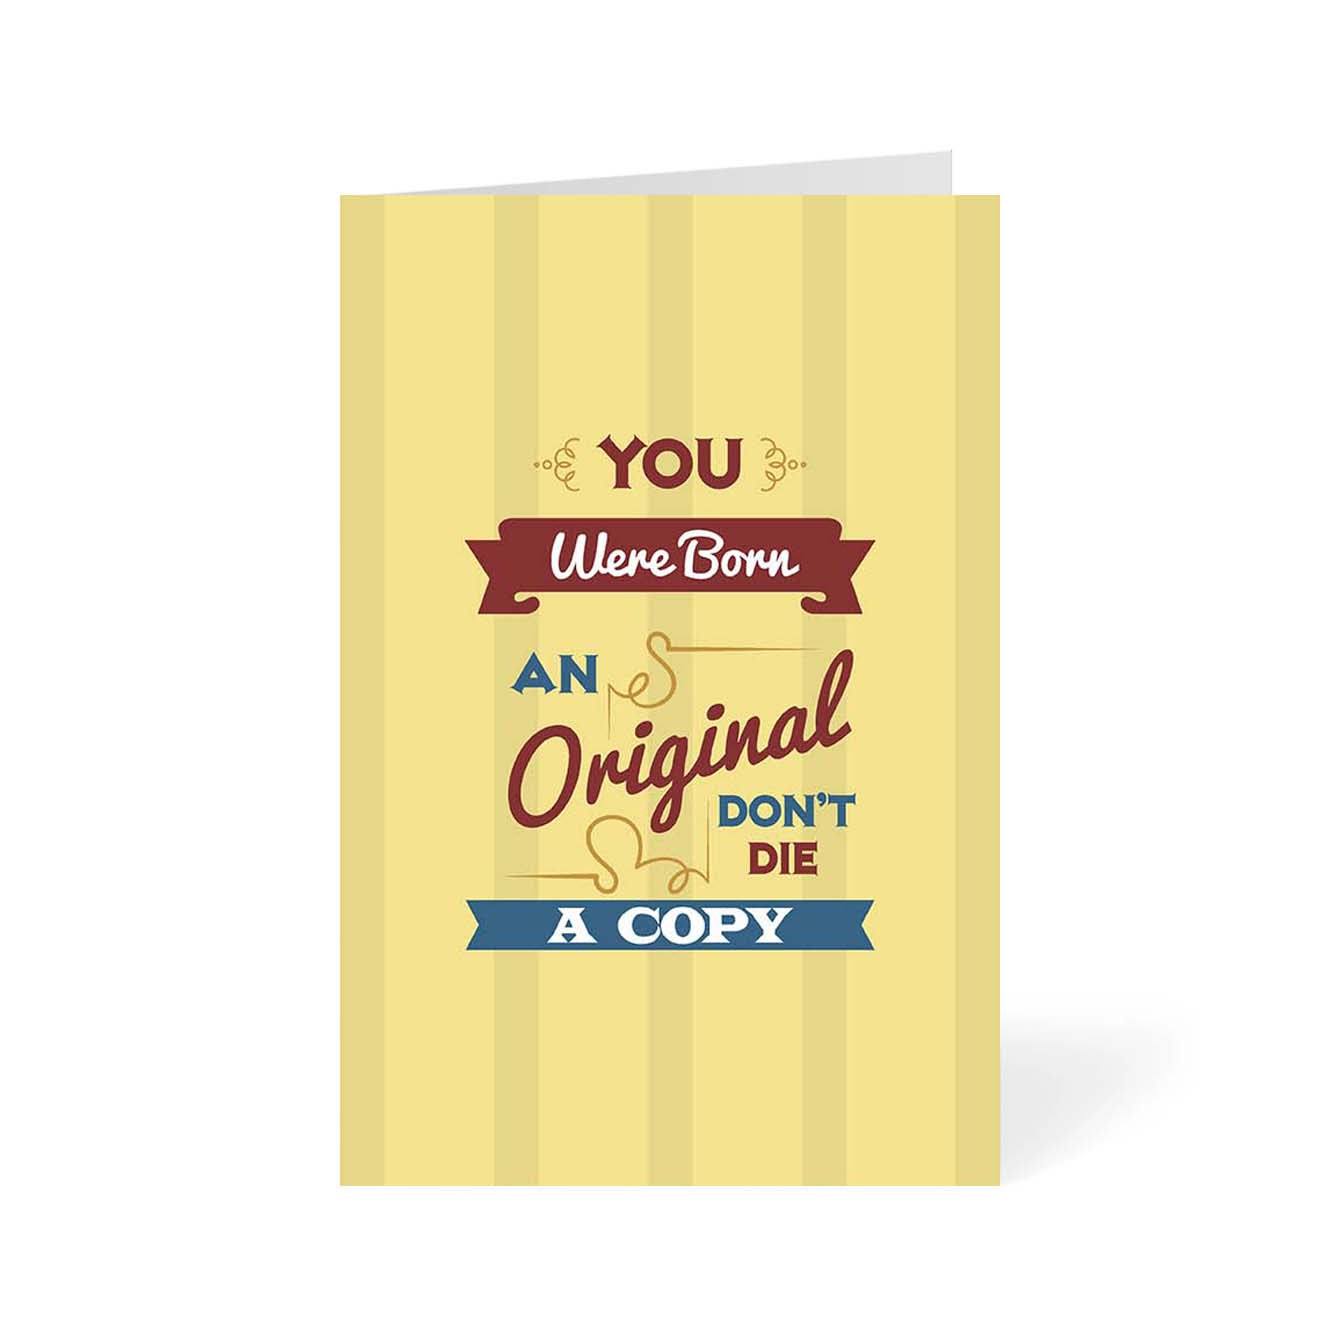 An Original Don't Die a copy Motivational Greeting Card Online